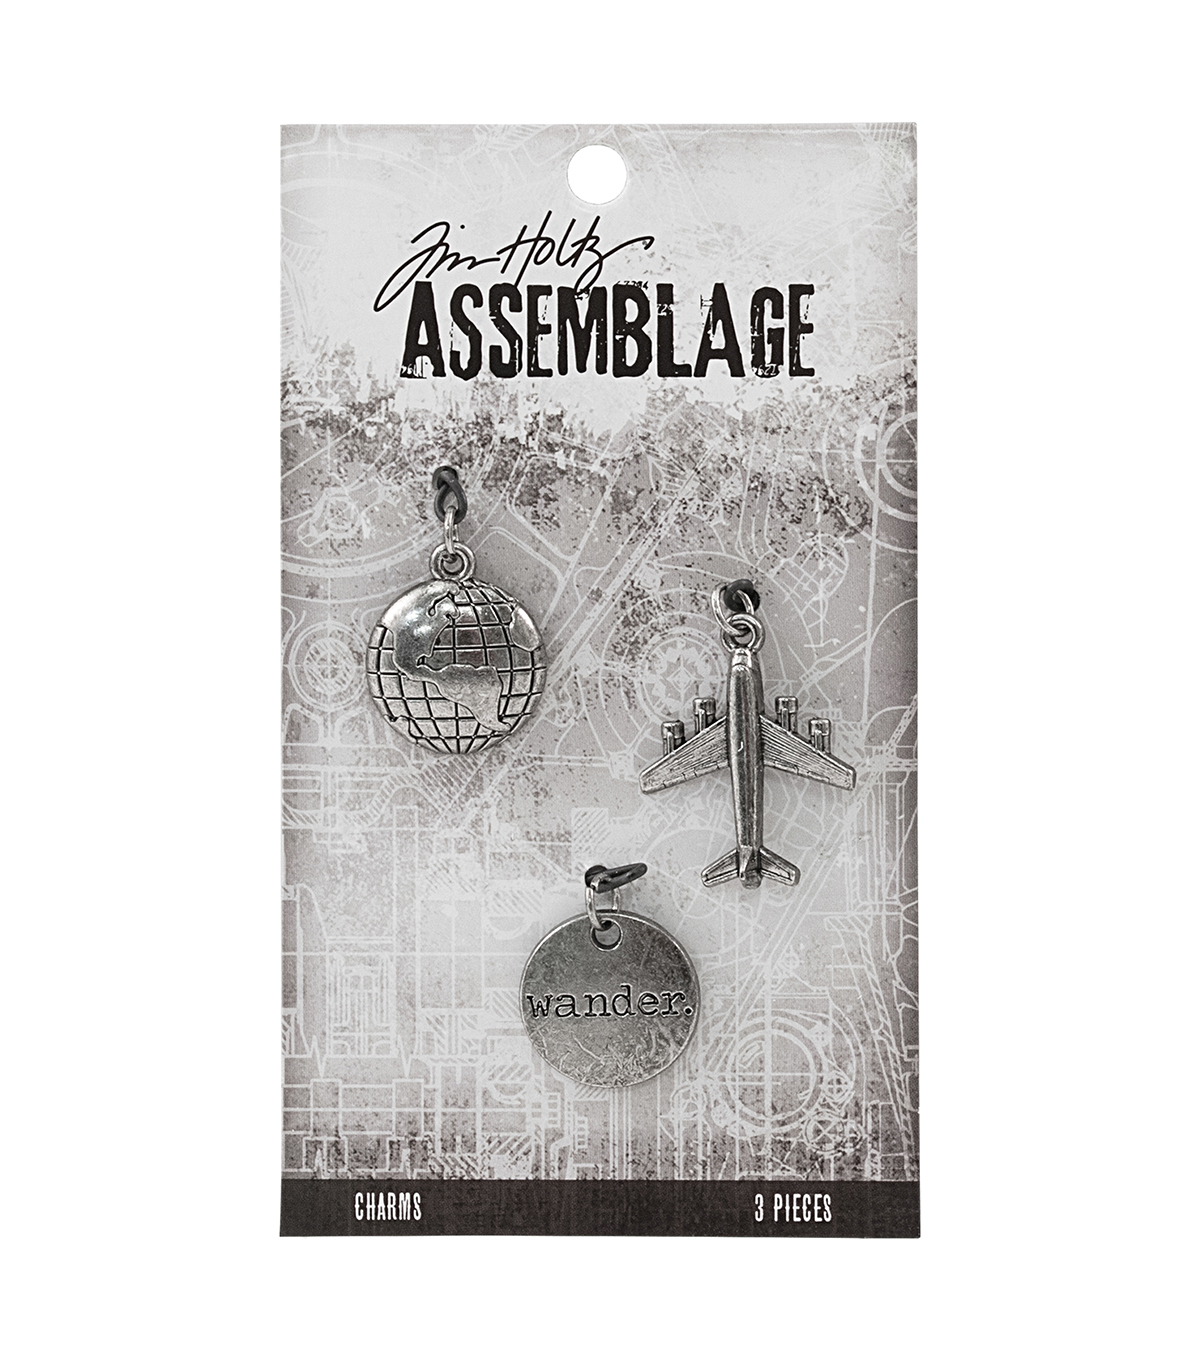 Tim Holtz Assemblage Pack of 3 Journey Charms